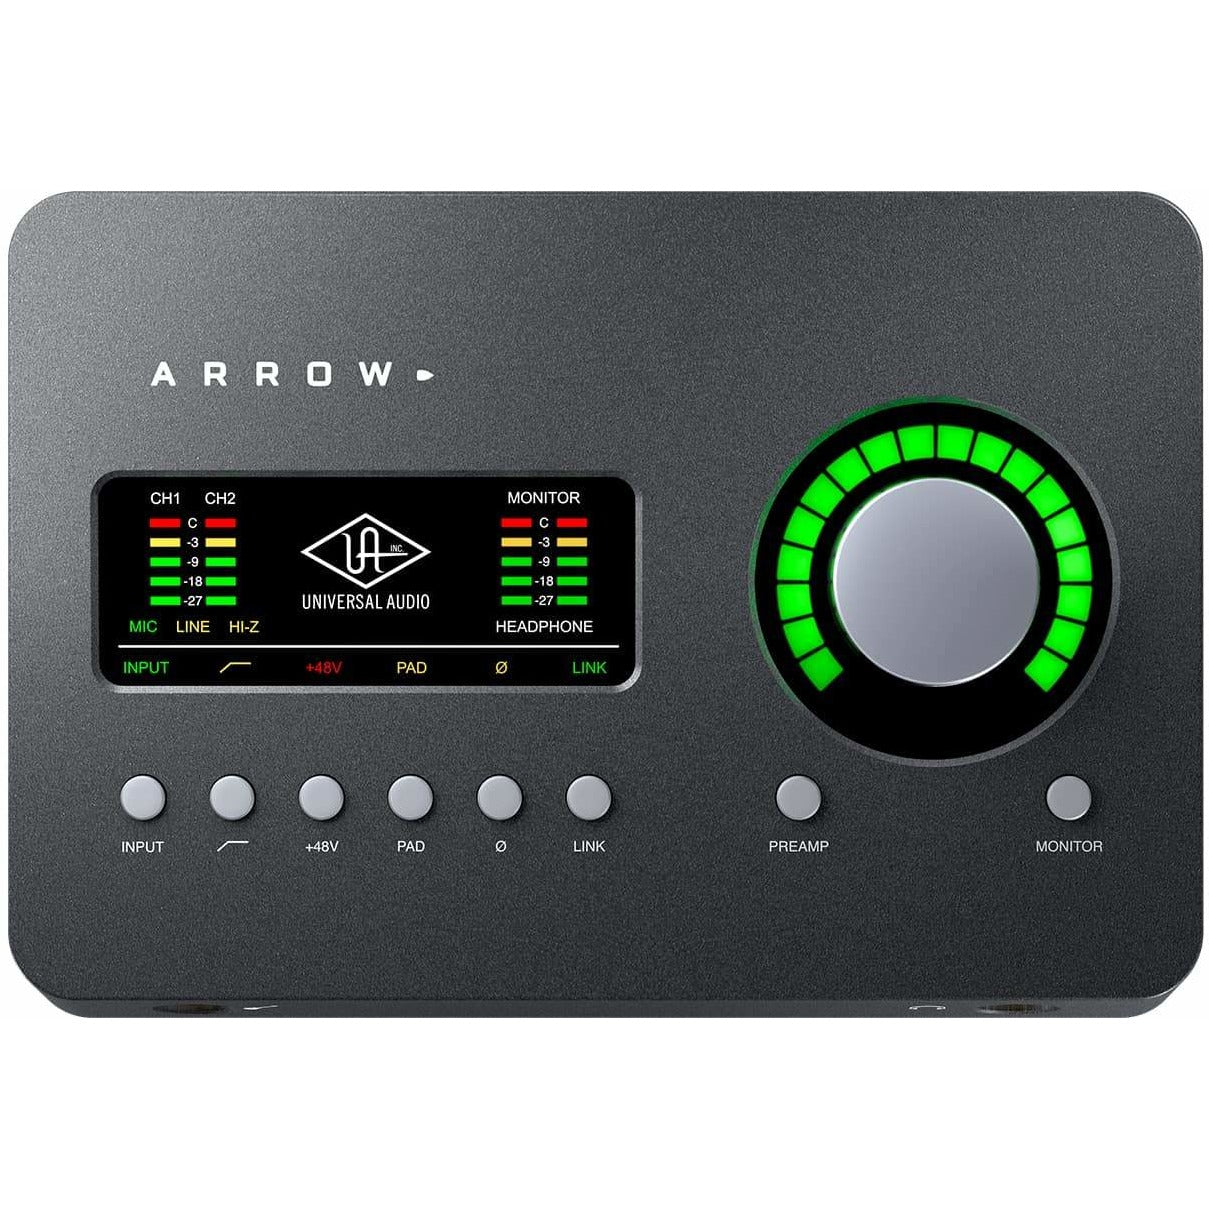 Arrow w/ UAD-2 SOLO Core processor